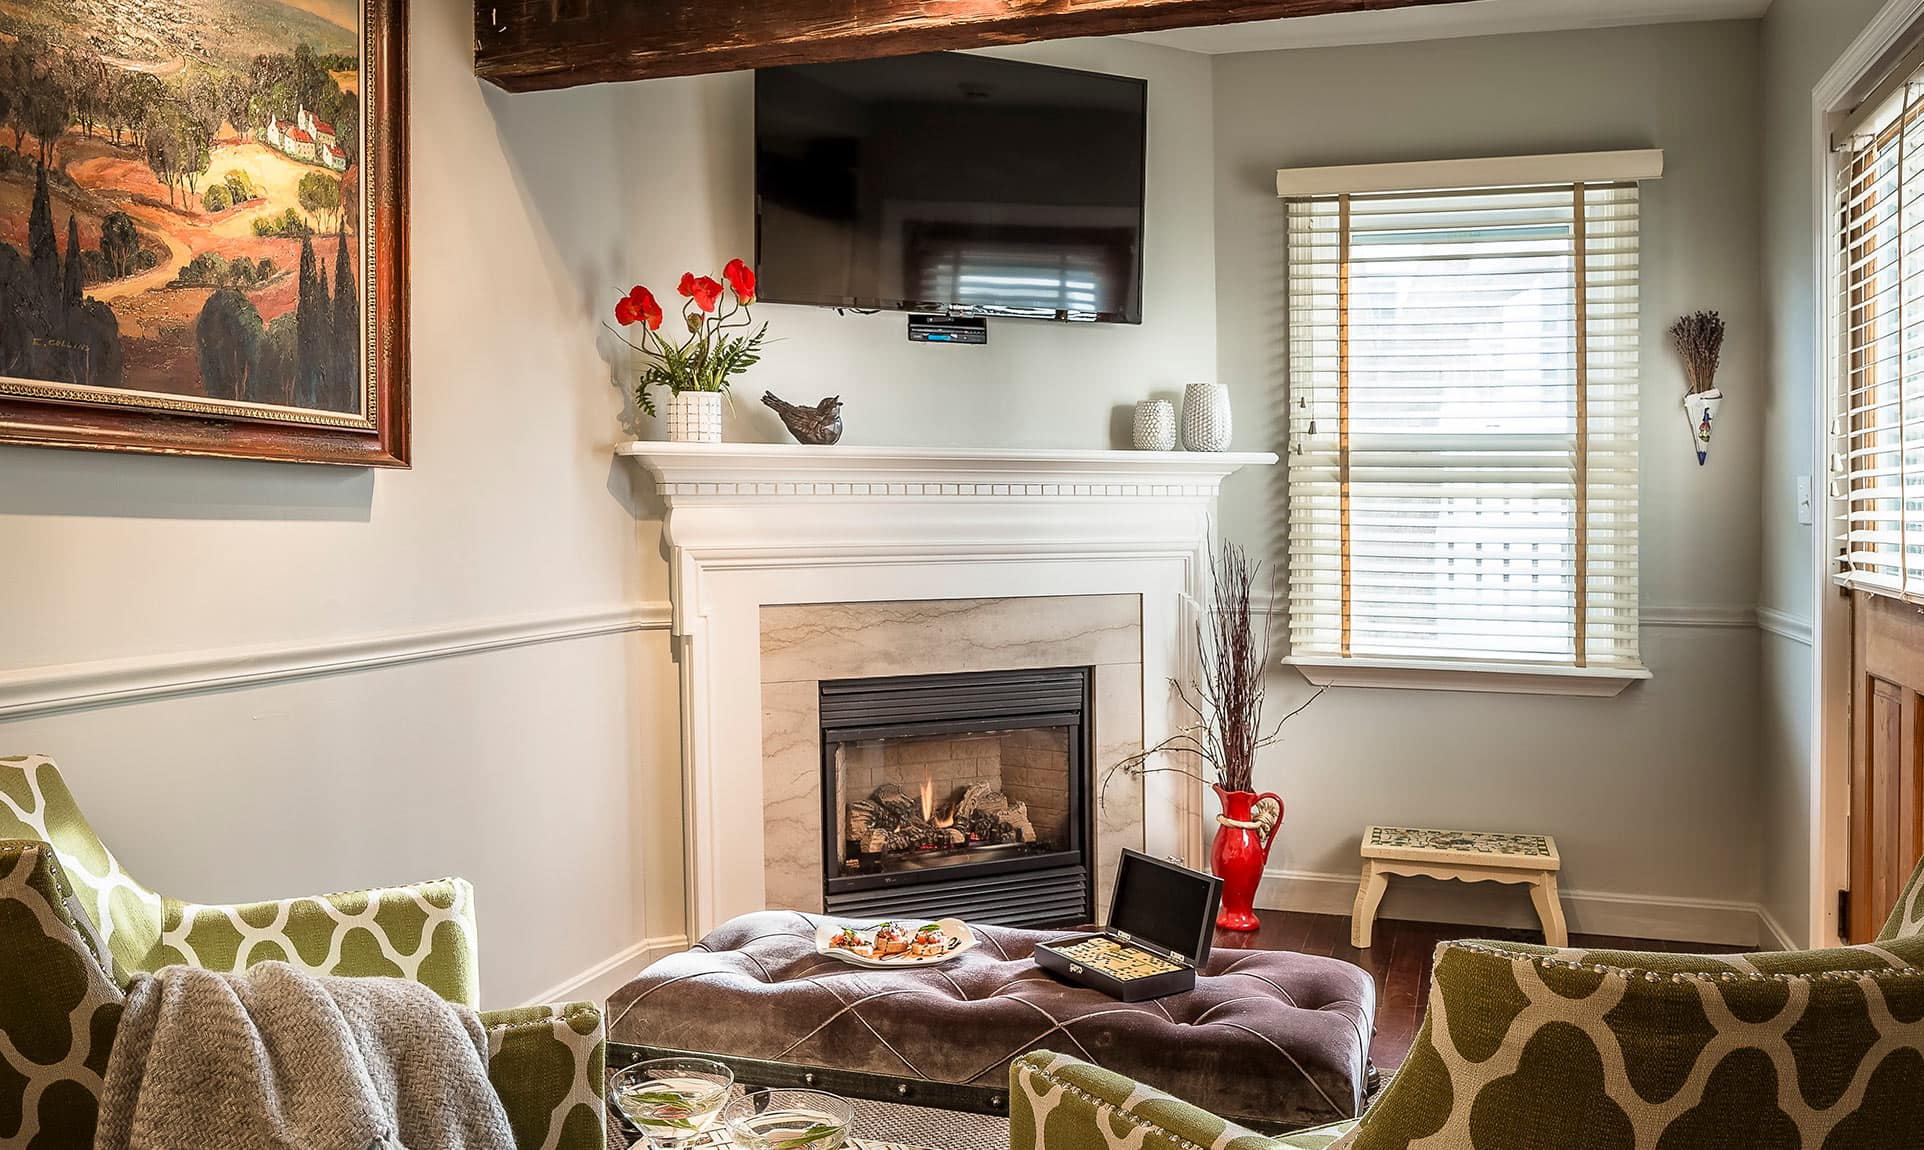 Fireplace with Flat Screen TV in Sitting Room